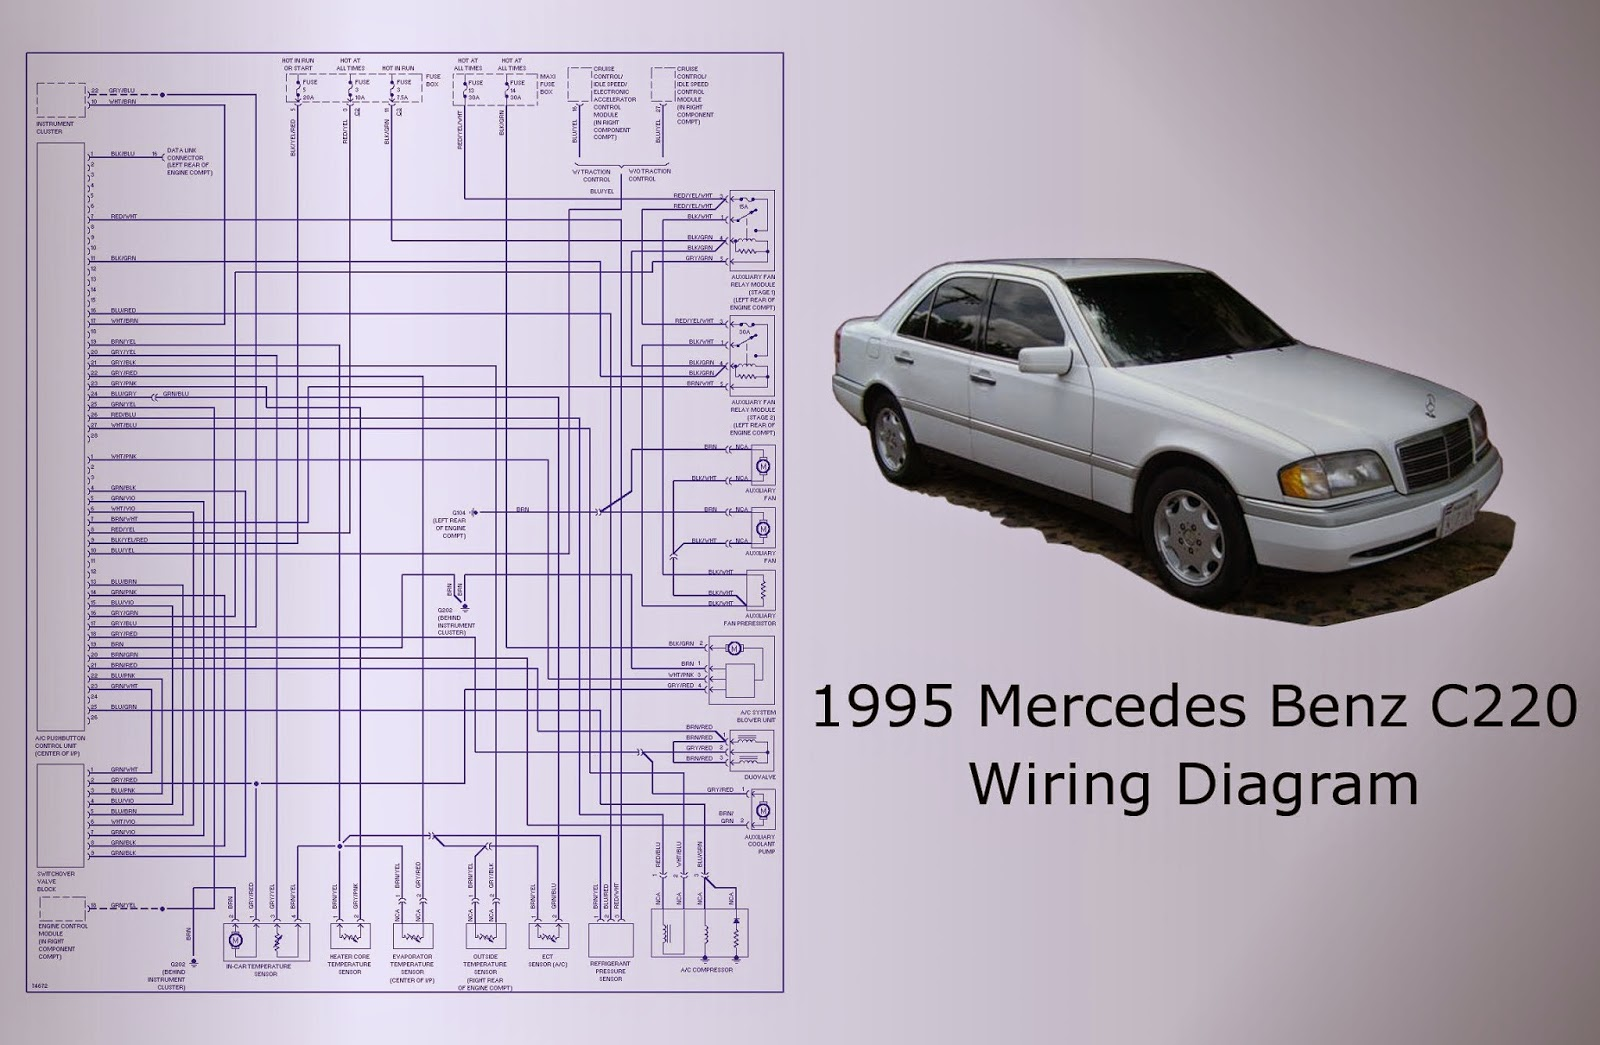 medium resolution of 1995 mercedes benz c220 wiring diagram auto wiring diagrams mercedes benz wiring diagram mercedes benz wiring